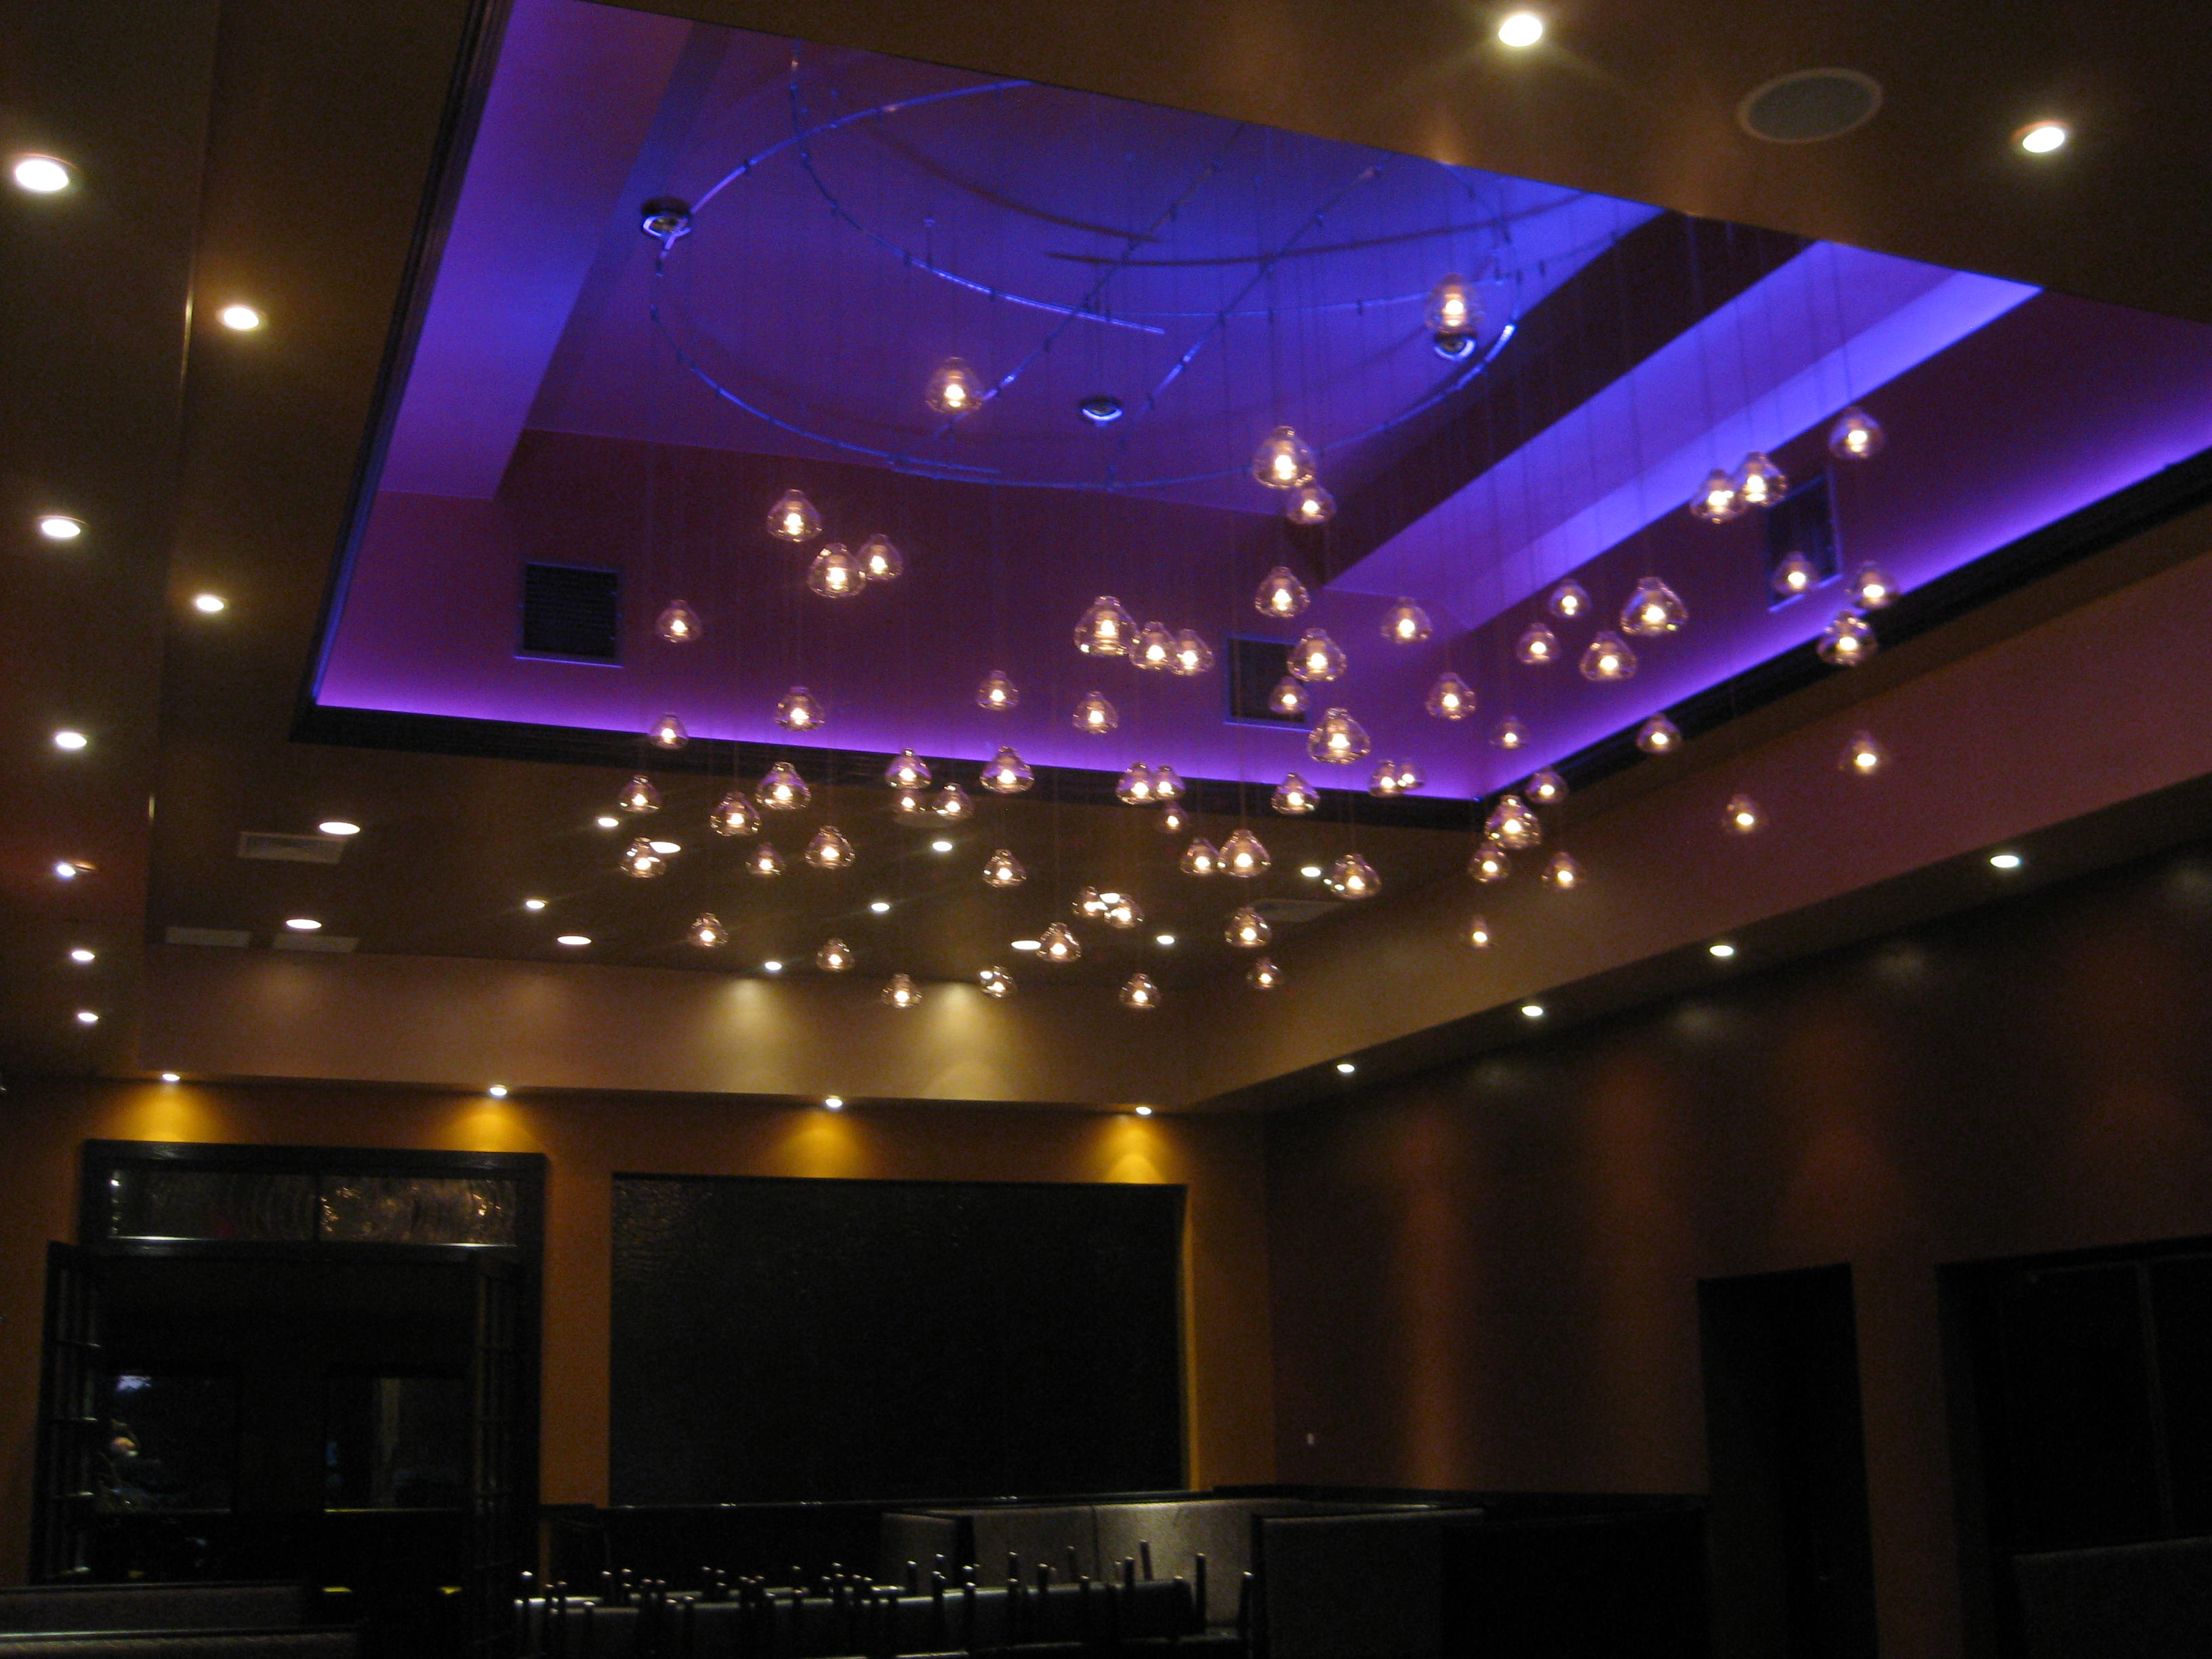 Small led recessed ceiling lights   craluxlighting.com